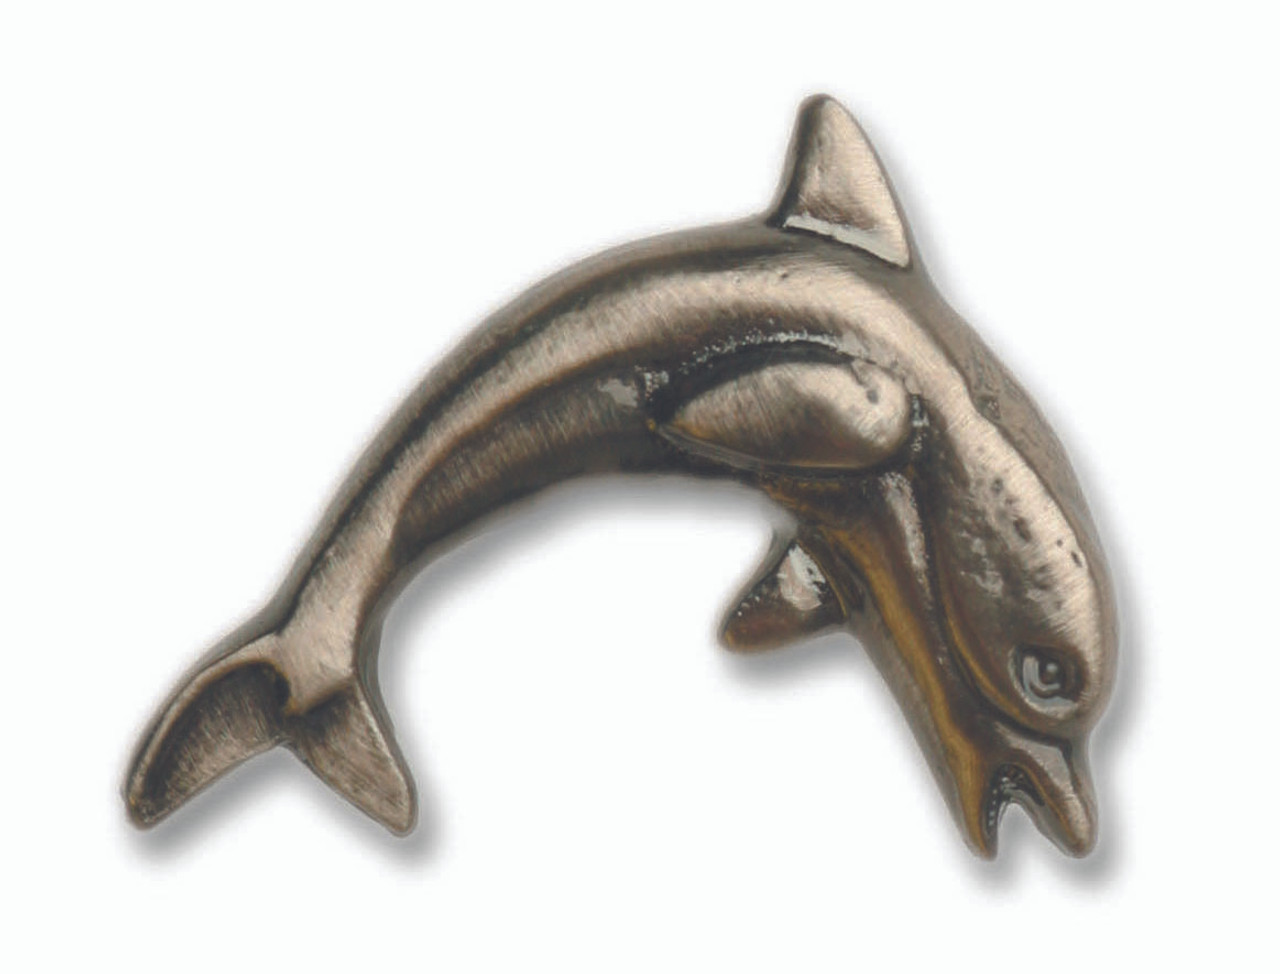 Nautical Cabinet Knobs - Dolphin - Minimum of 3